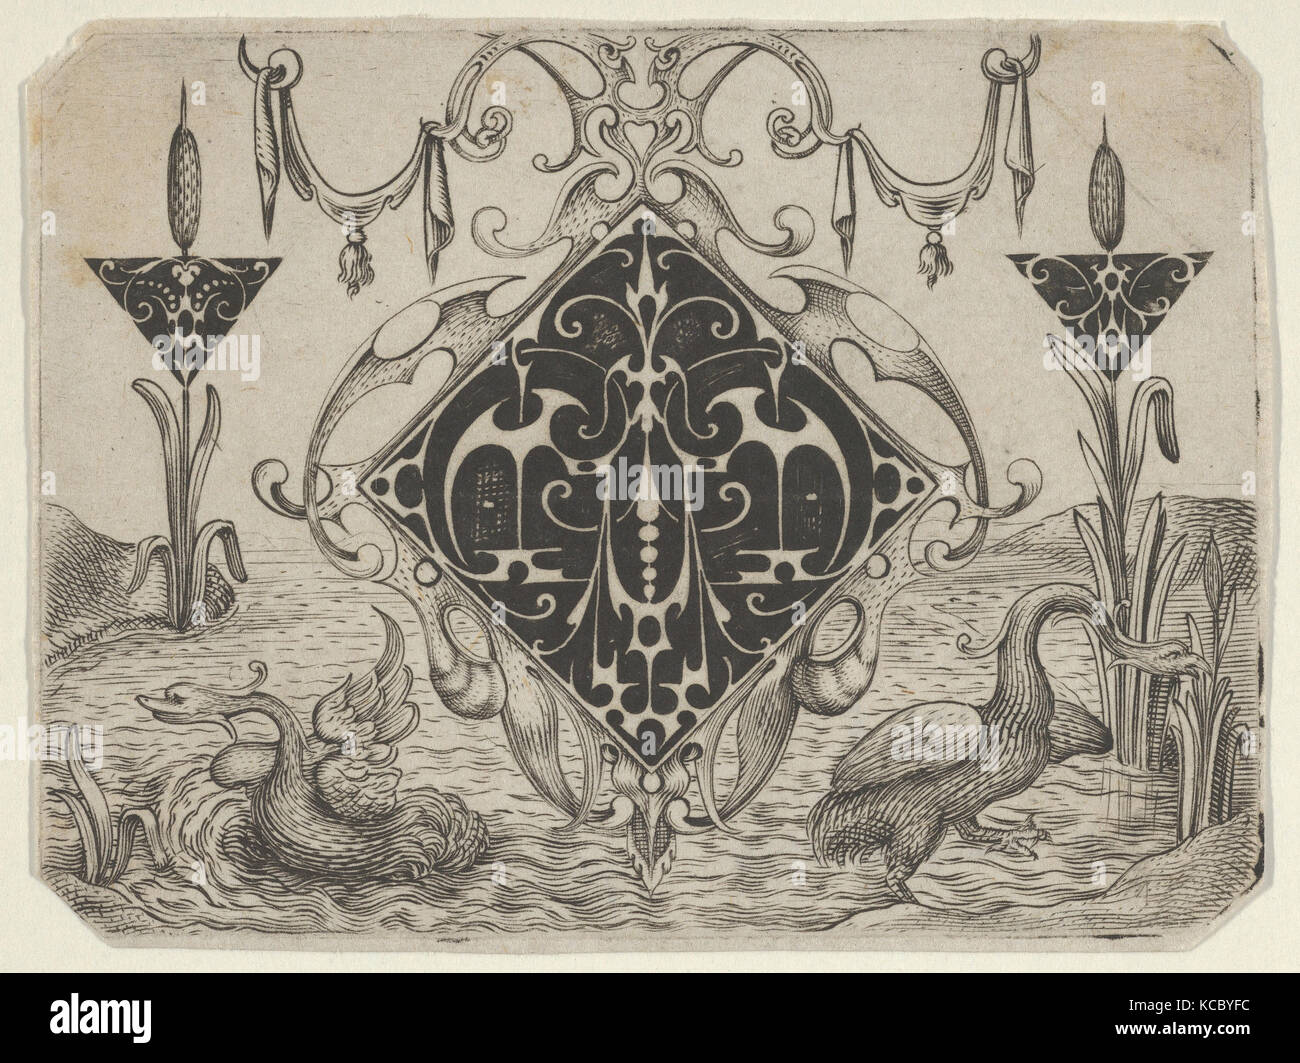 Lozenge-shaped Pendant and Two Triangular Motifs in a Riverscape, 1622 - Stock Image